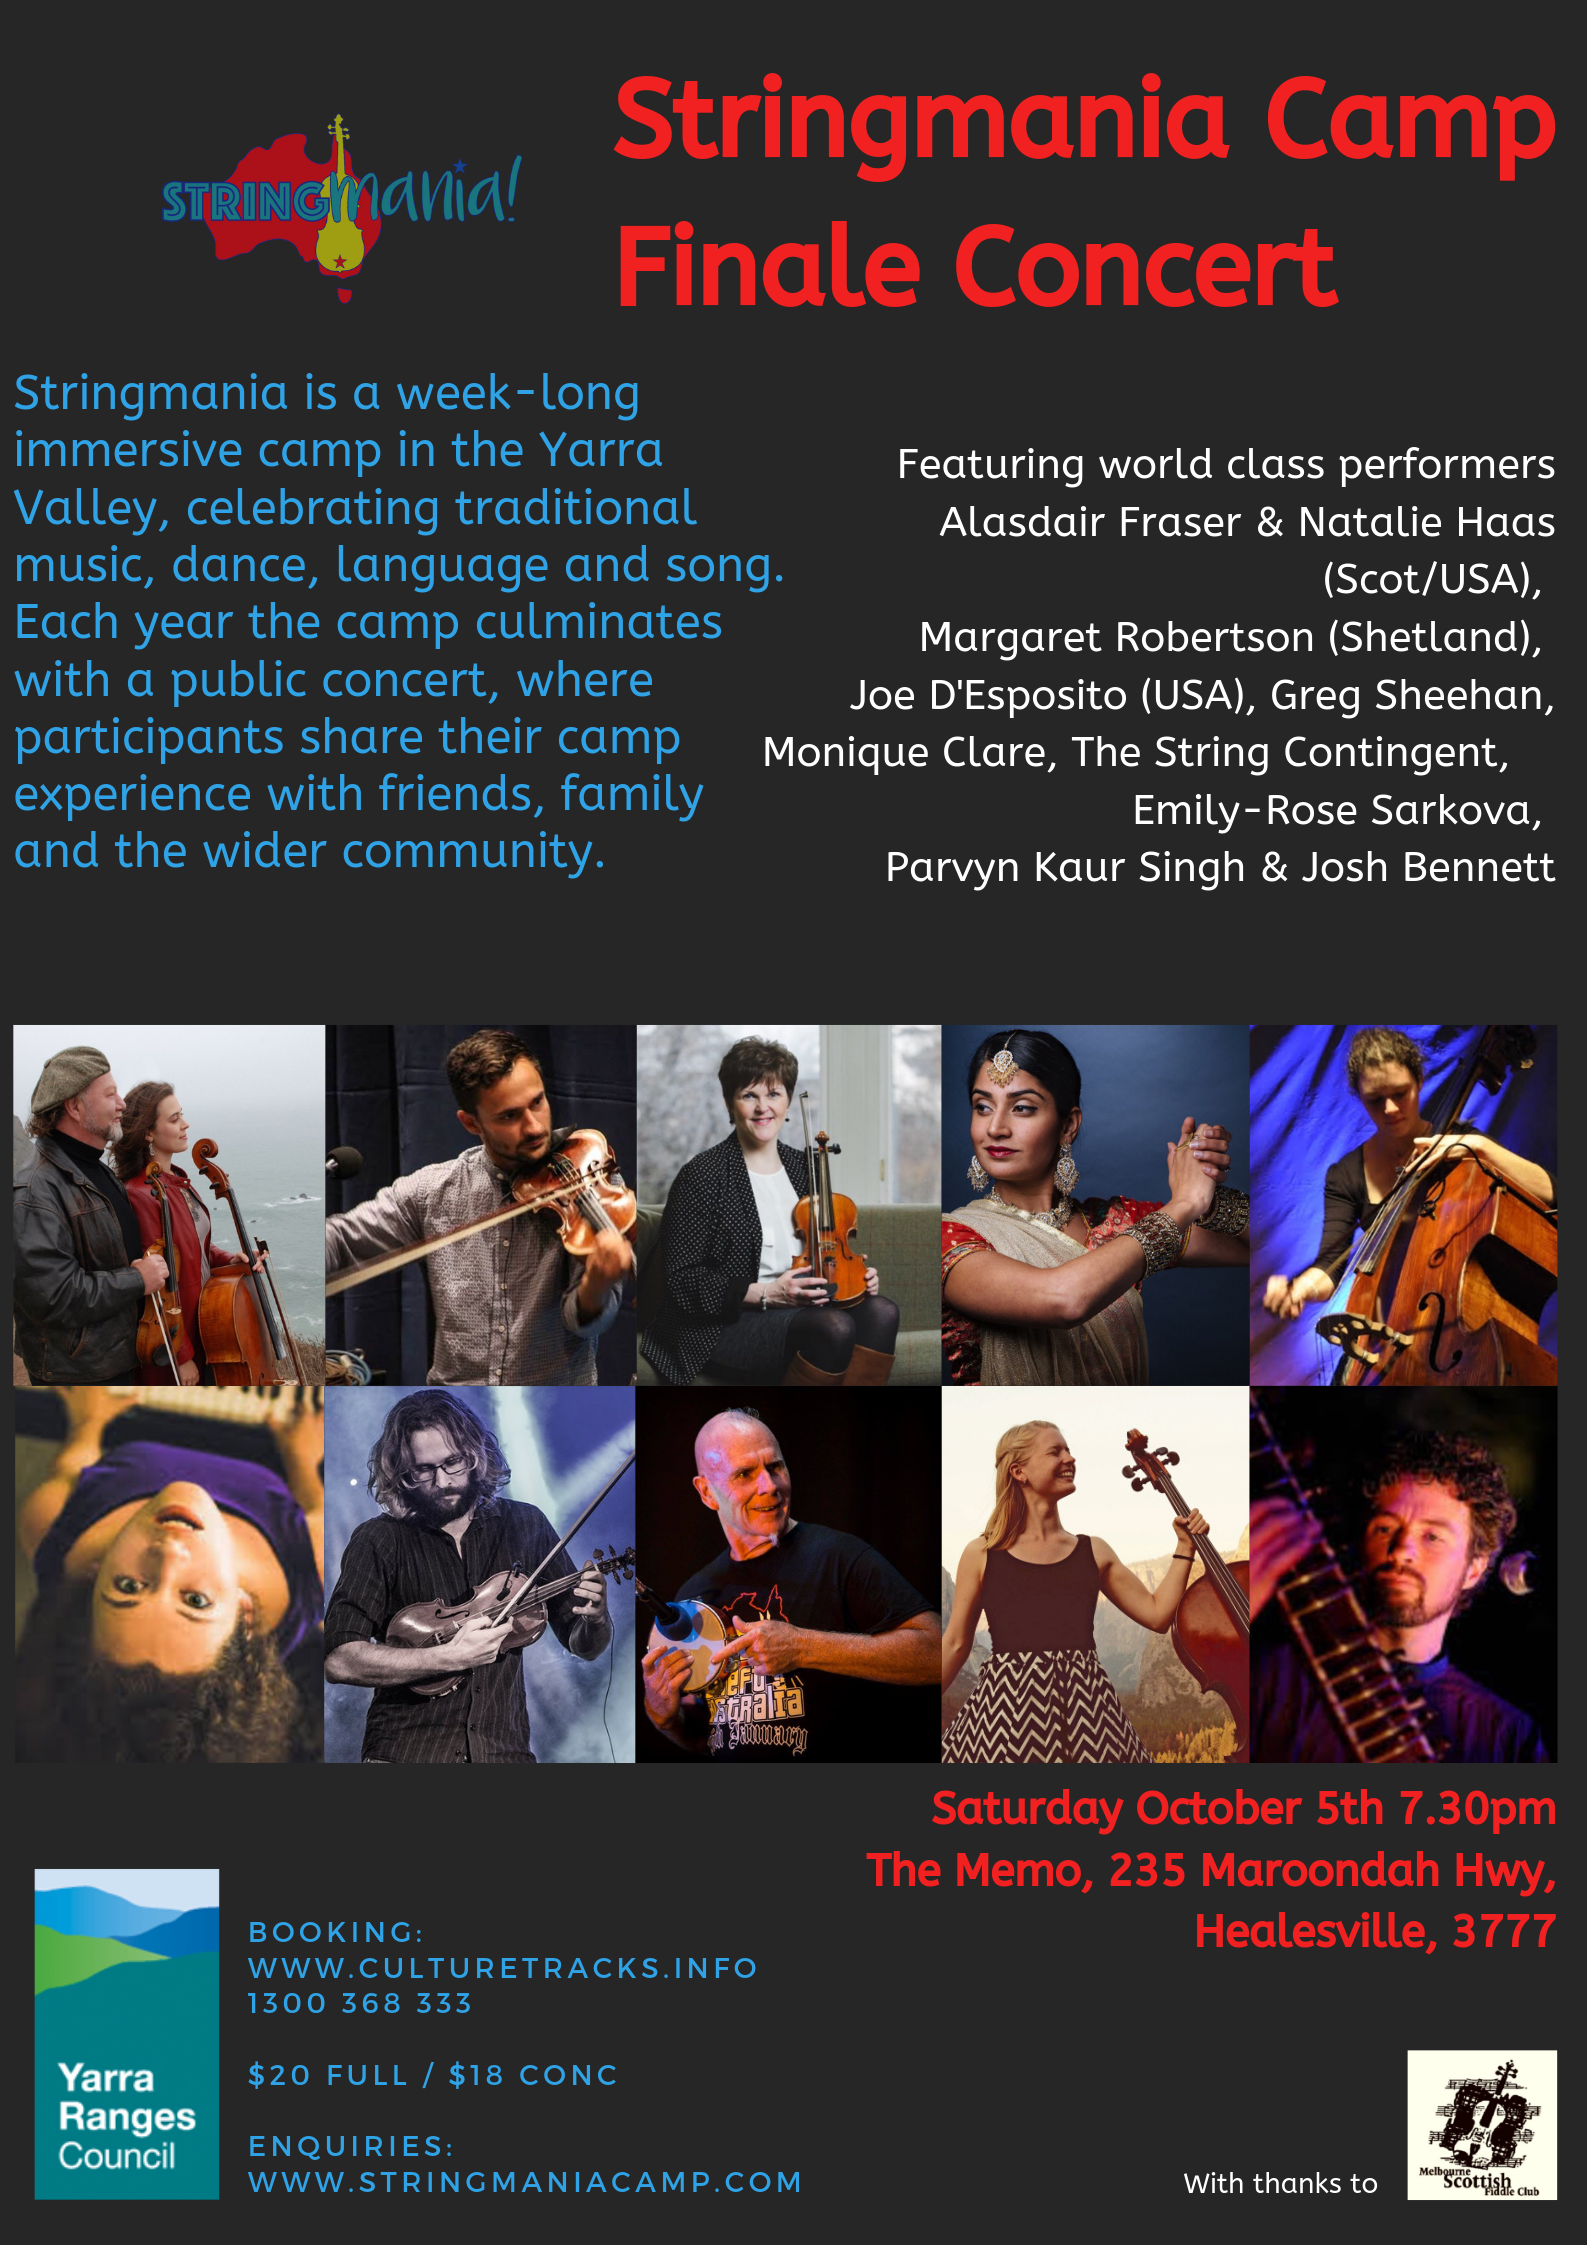 Get your tix for the all-star Stringmania concert in Healesville Oct 5